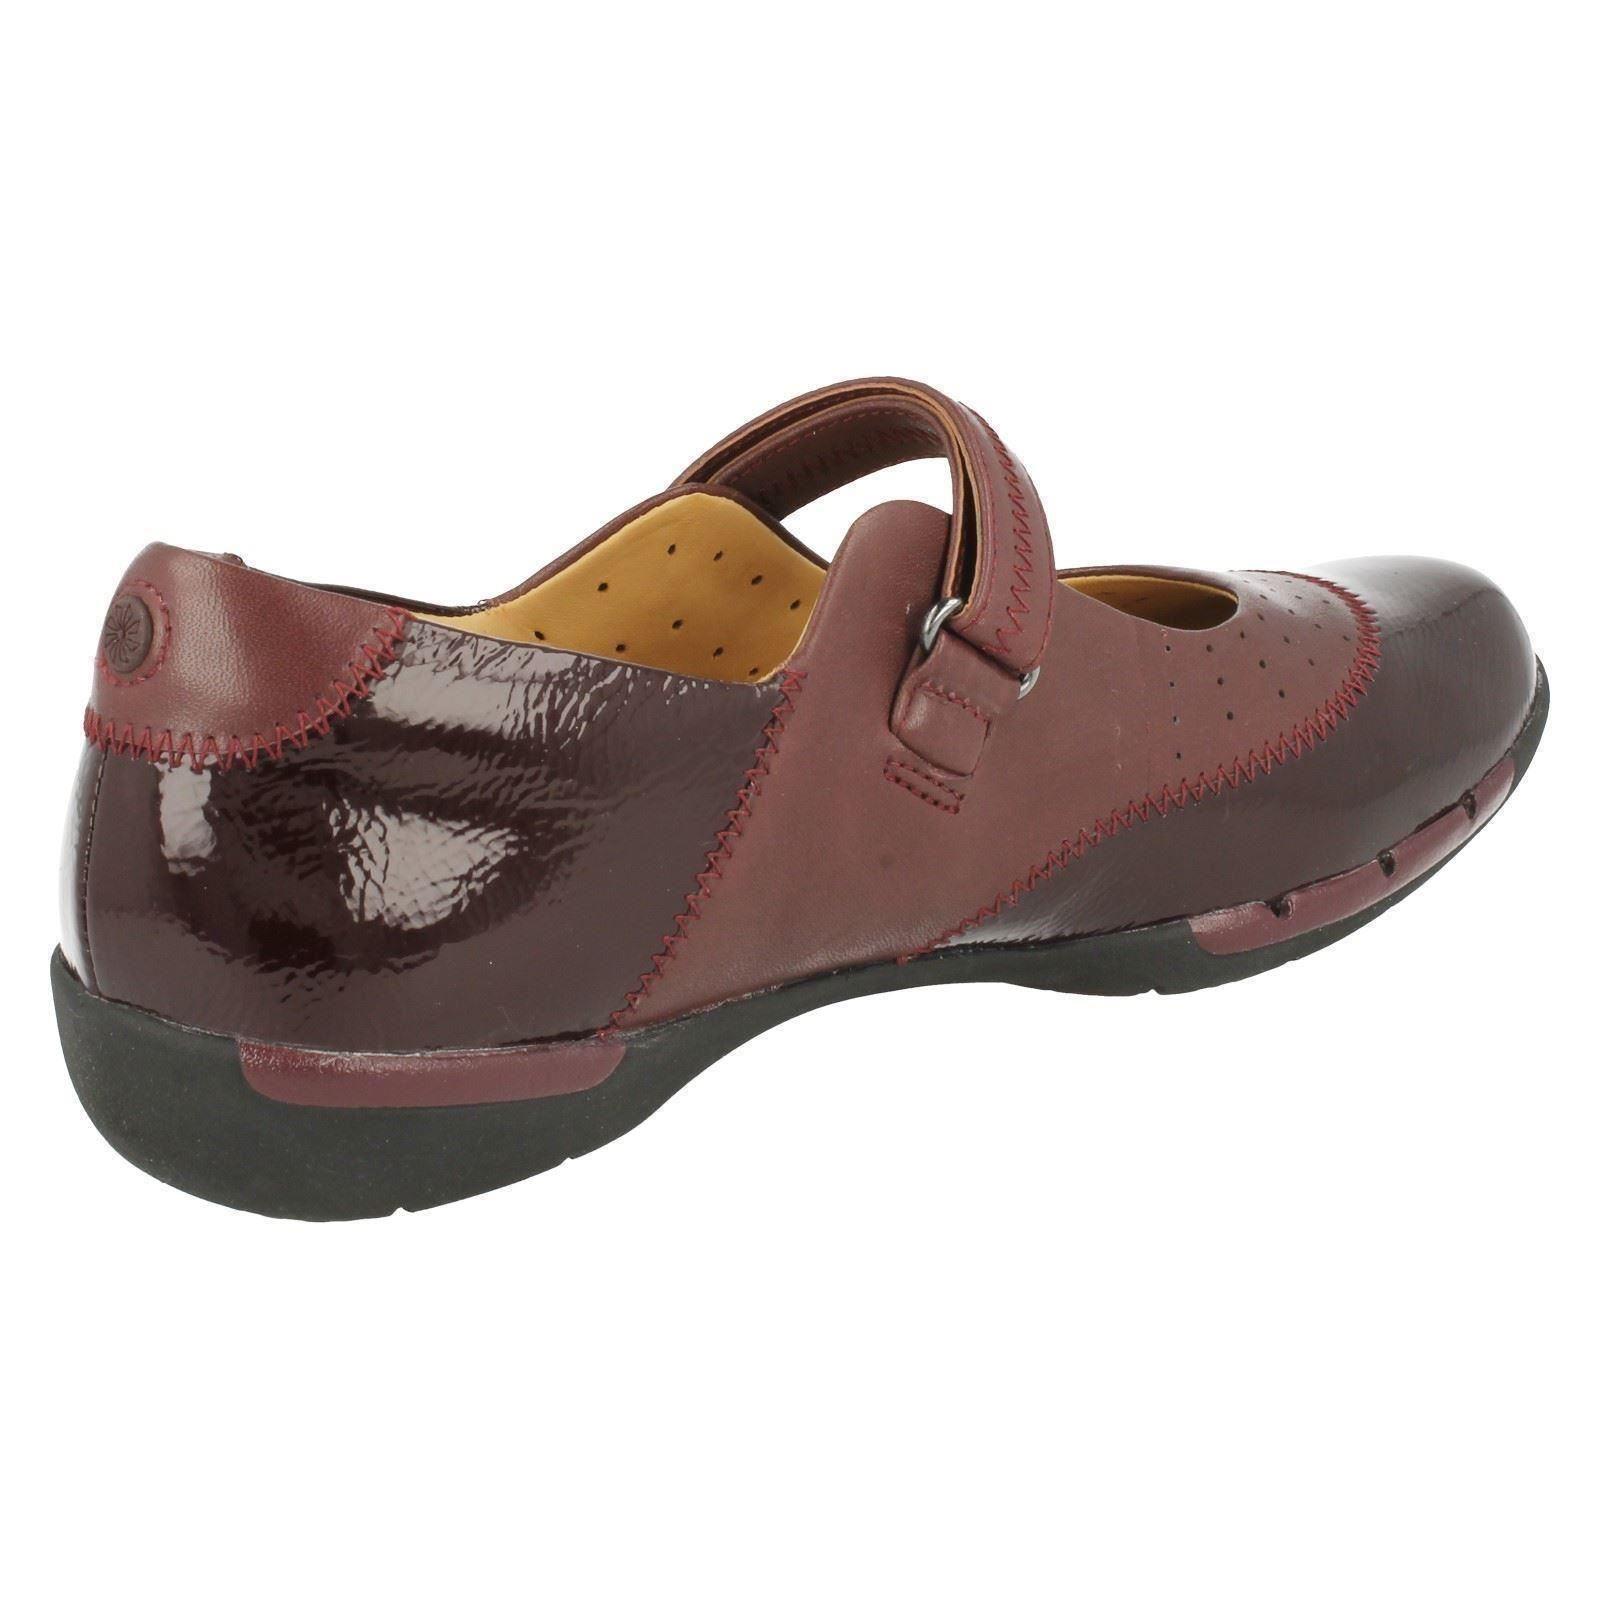 Burgundy Unstructured Hazel Casual Un púrpura Clarks Damas Shoes P8qxZxw